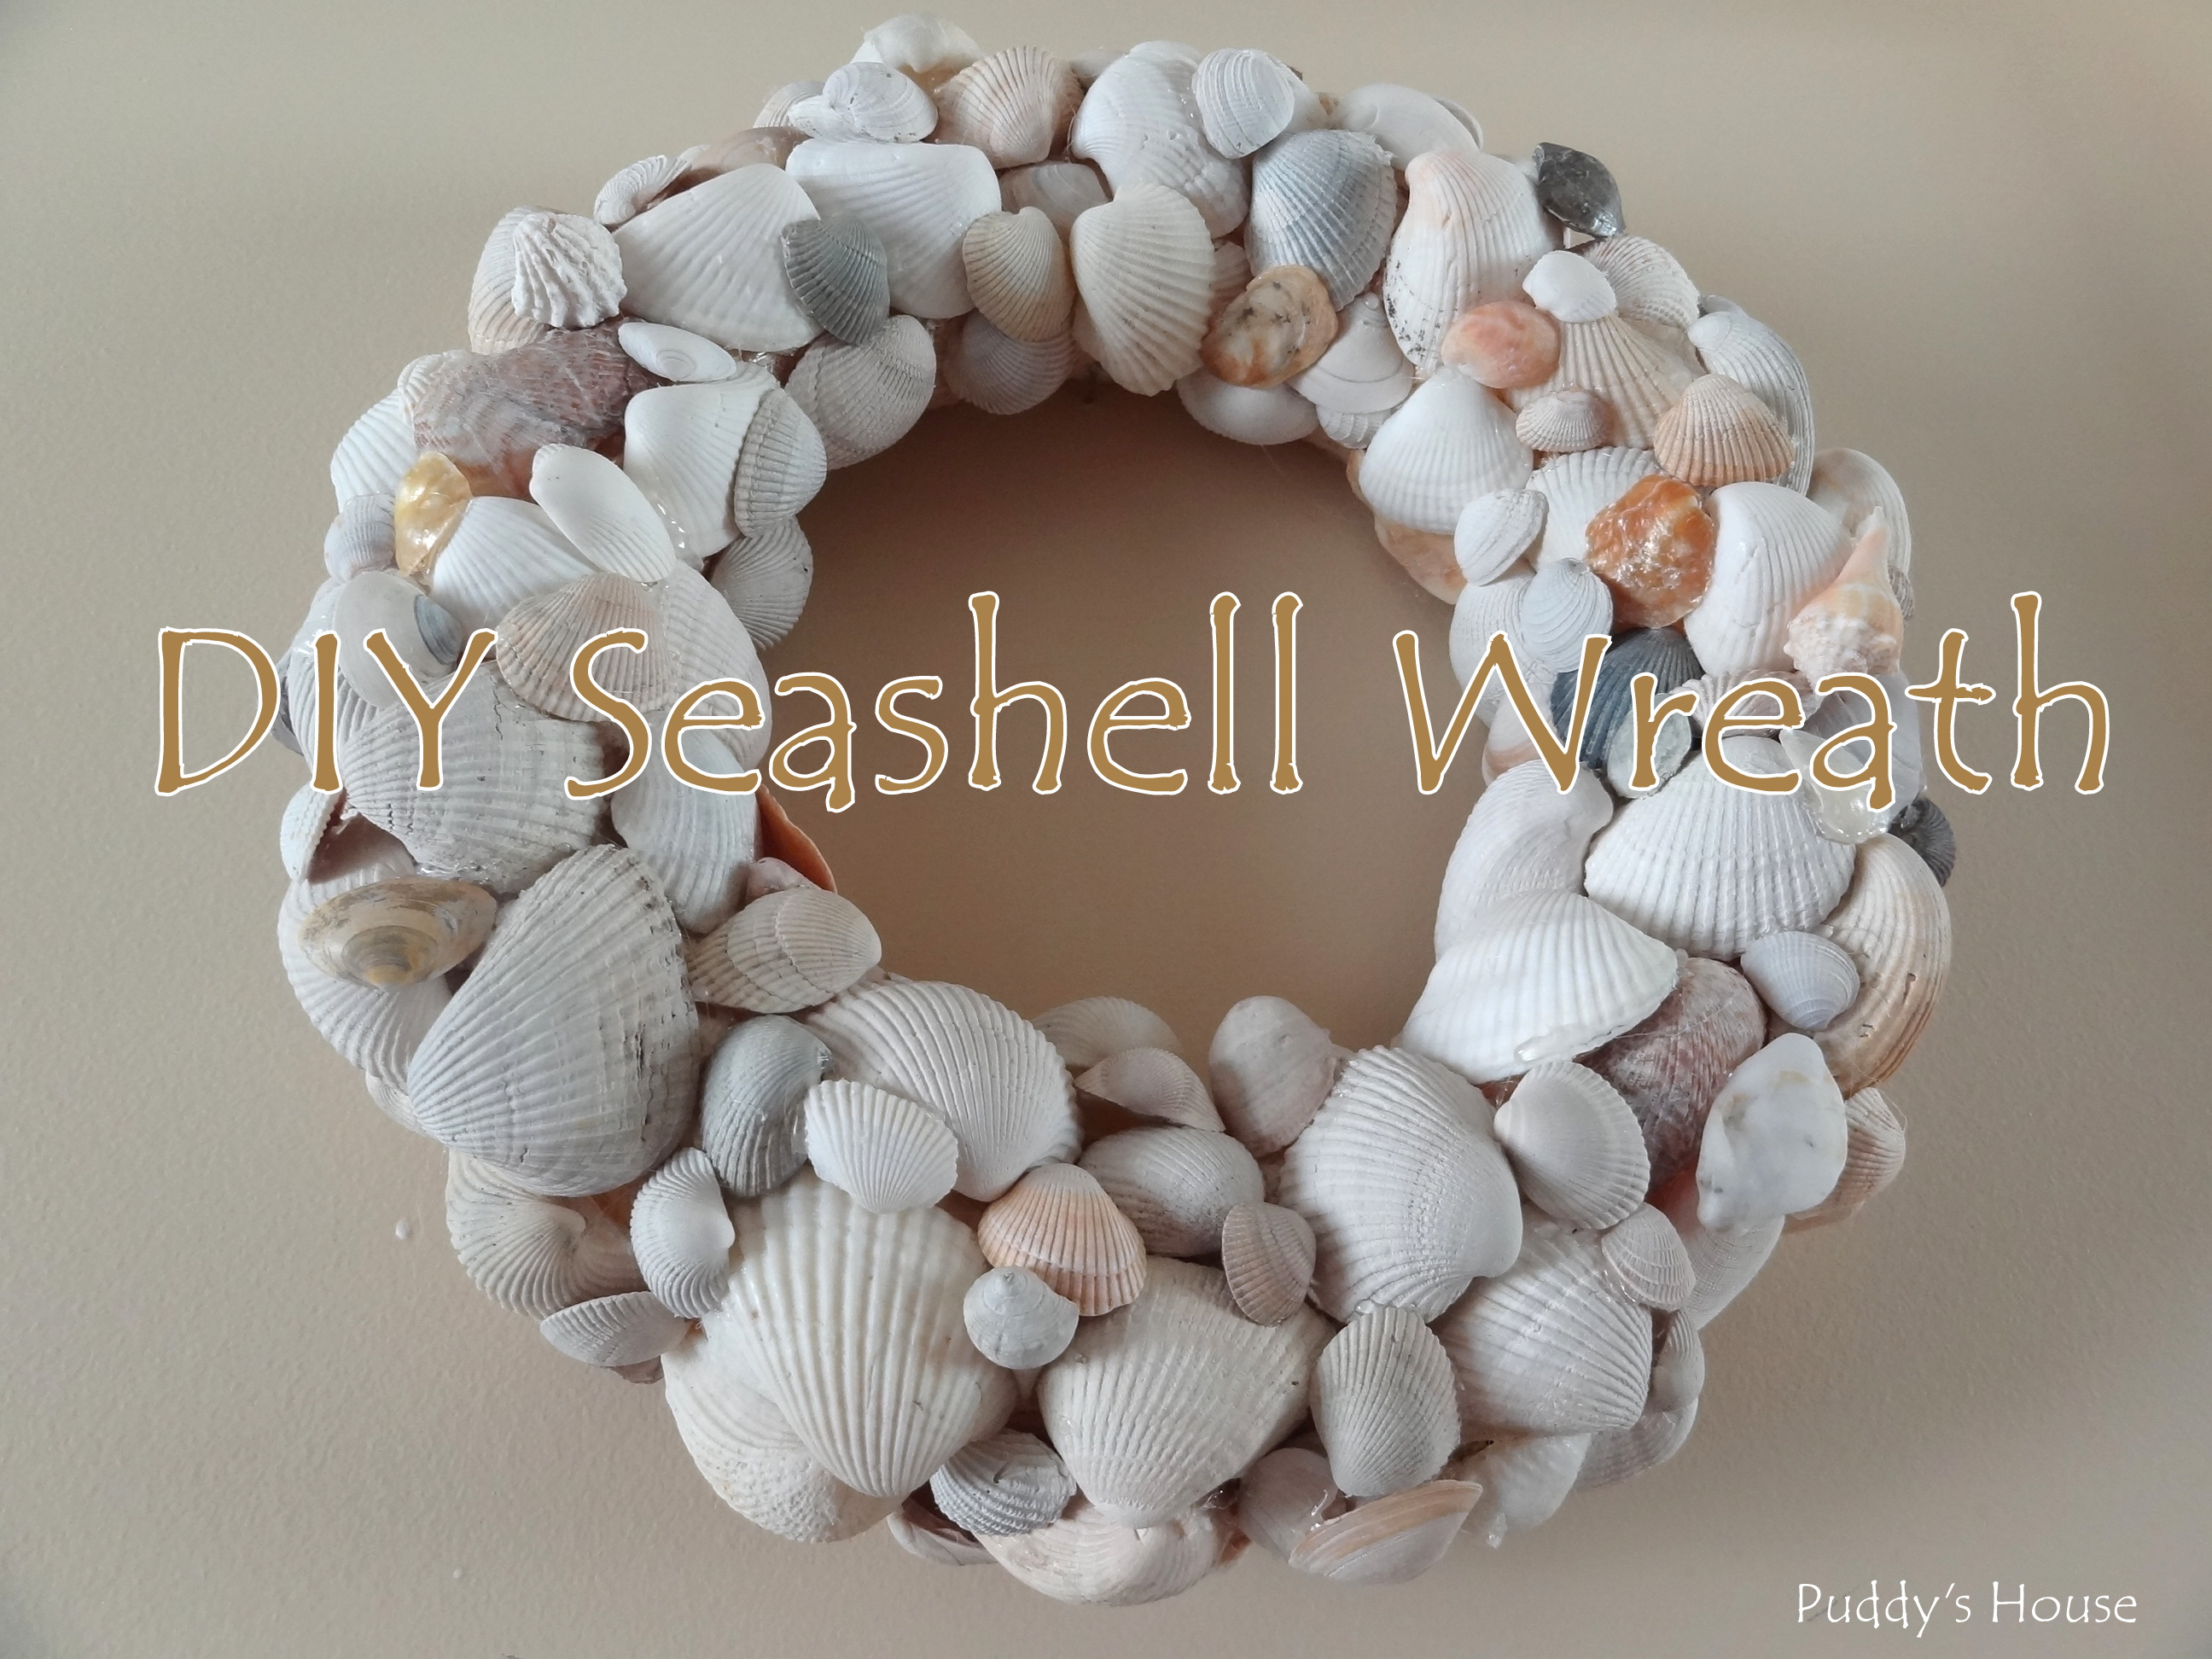 Diy seashell wreath puddy 39 s house - Diy projects with seashells personalize your home ...